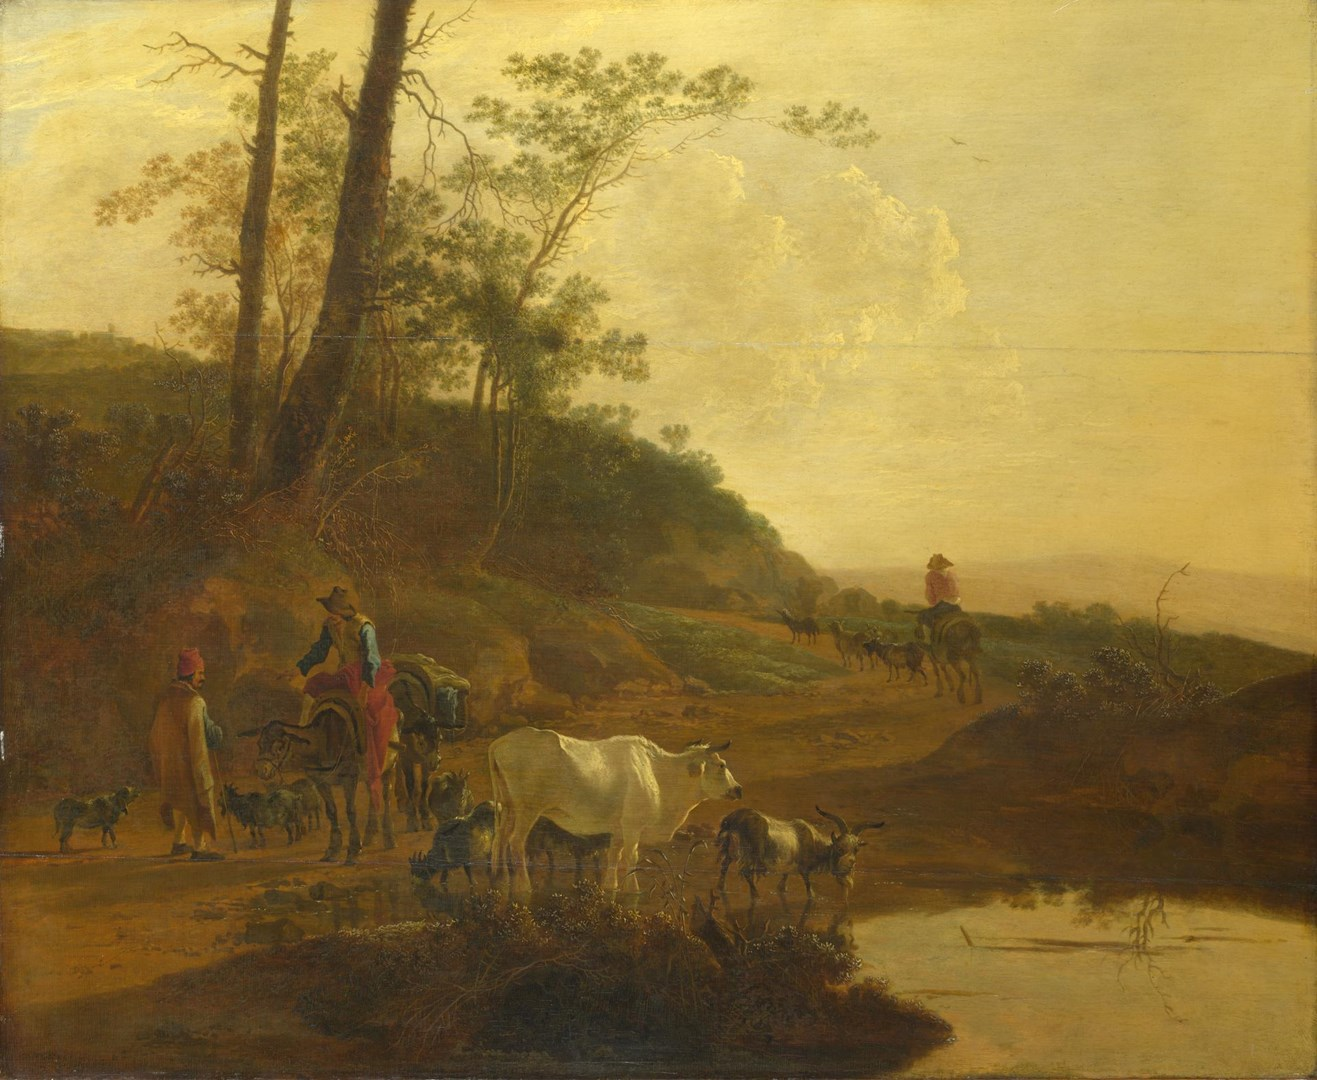 Men with an Ox and Cattle by a Pool by Jan Both